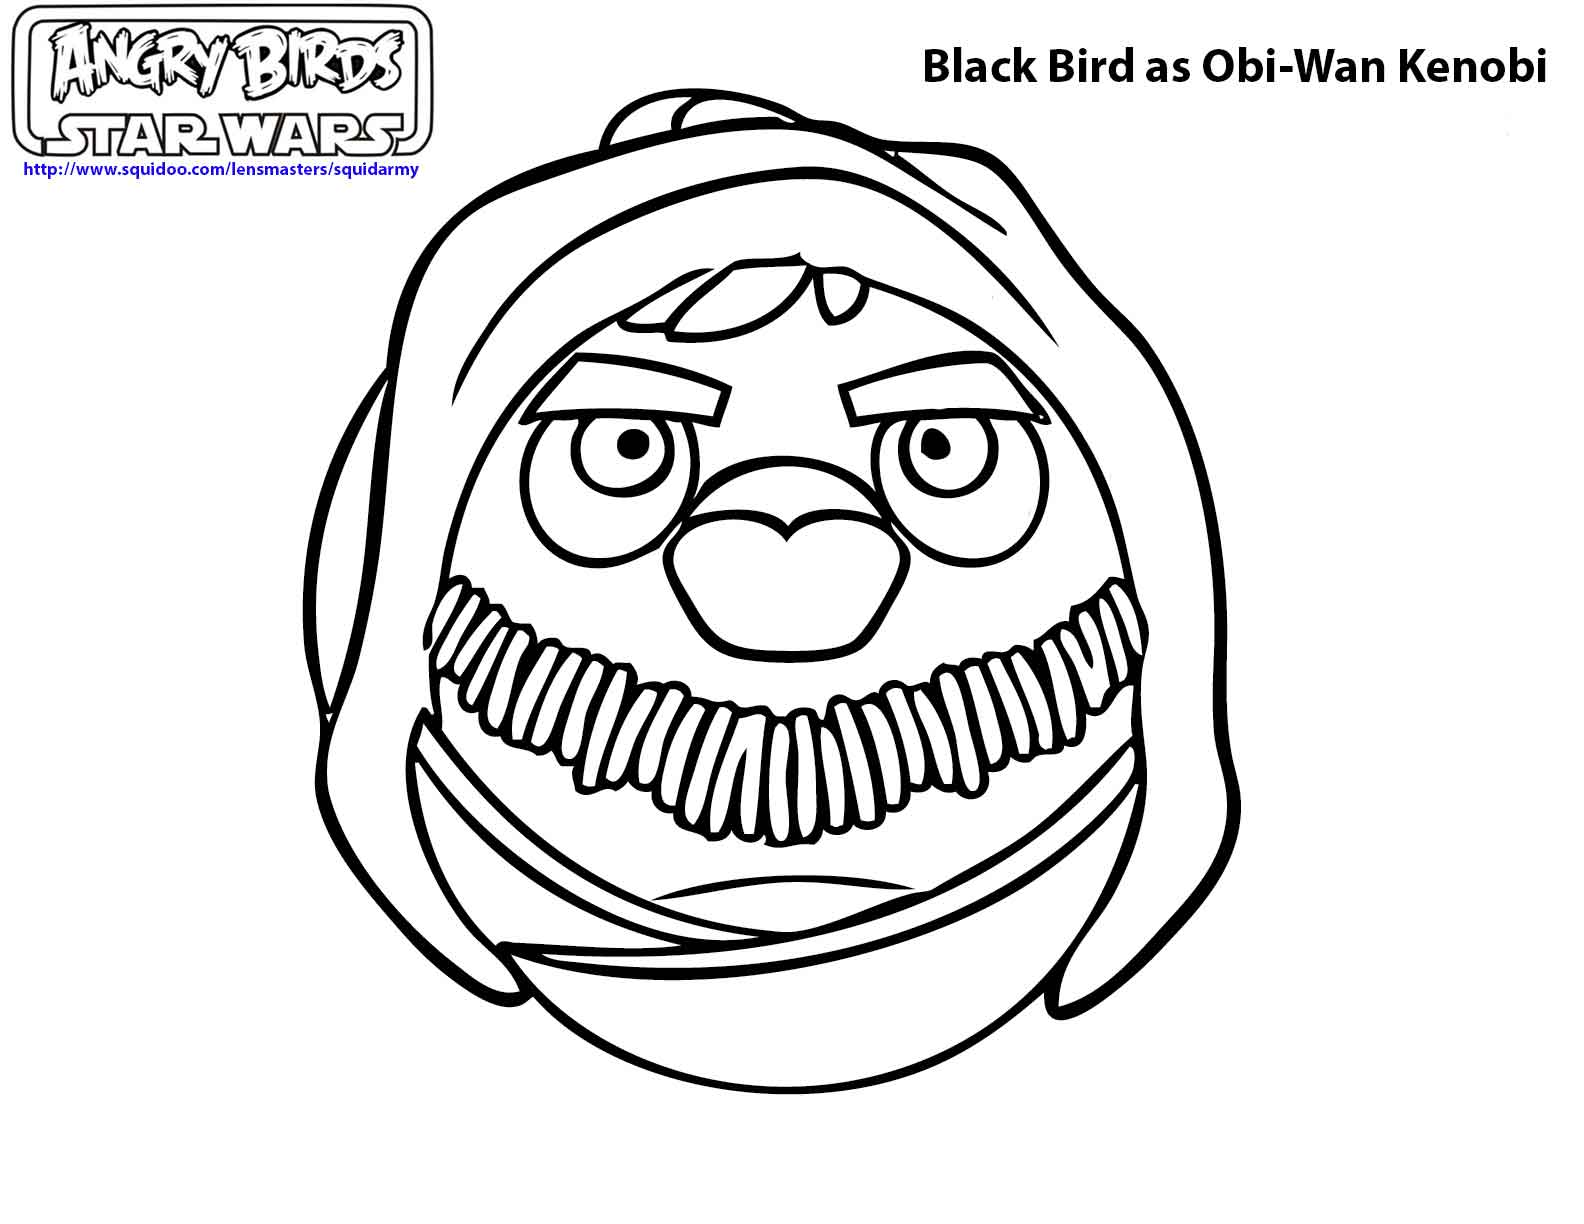 Angry bird star wars coloring pages - photo#41